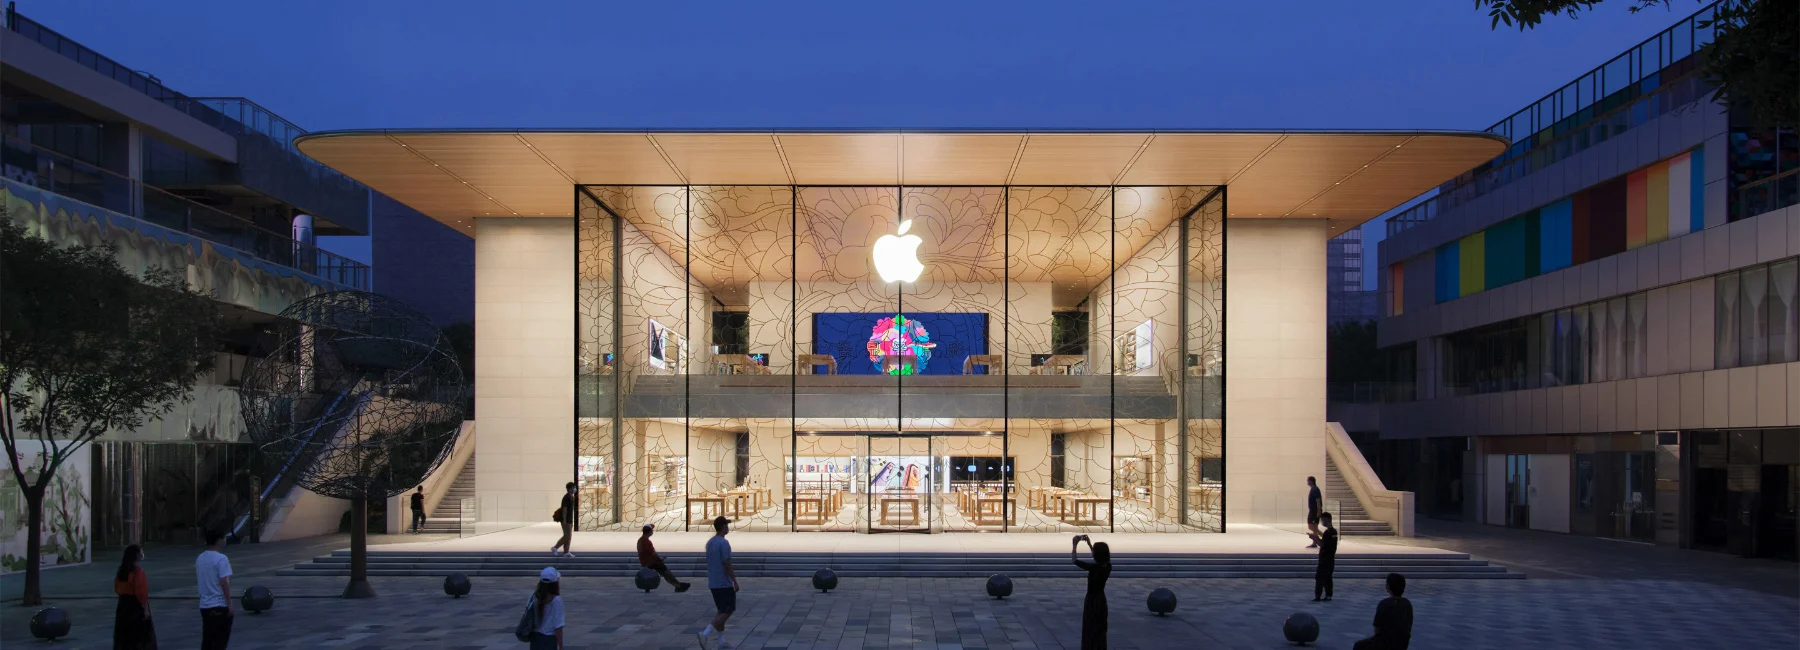 Foster + Partners Completes 'Open and Inviting' Apple Store in Beijing's Sanlitun Quarter